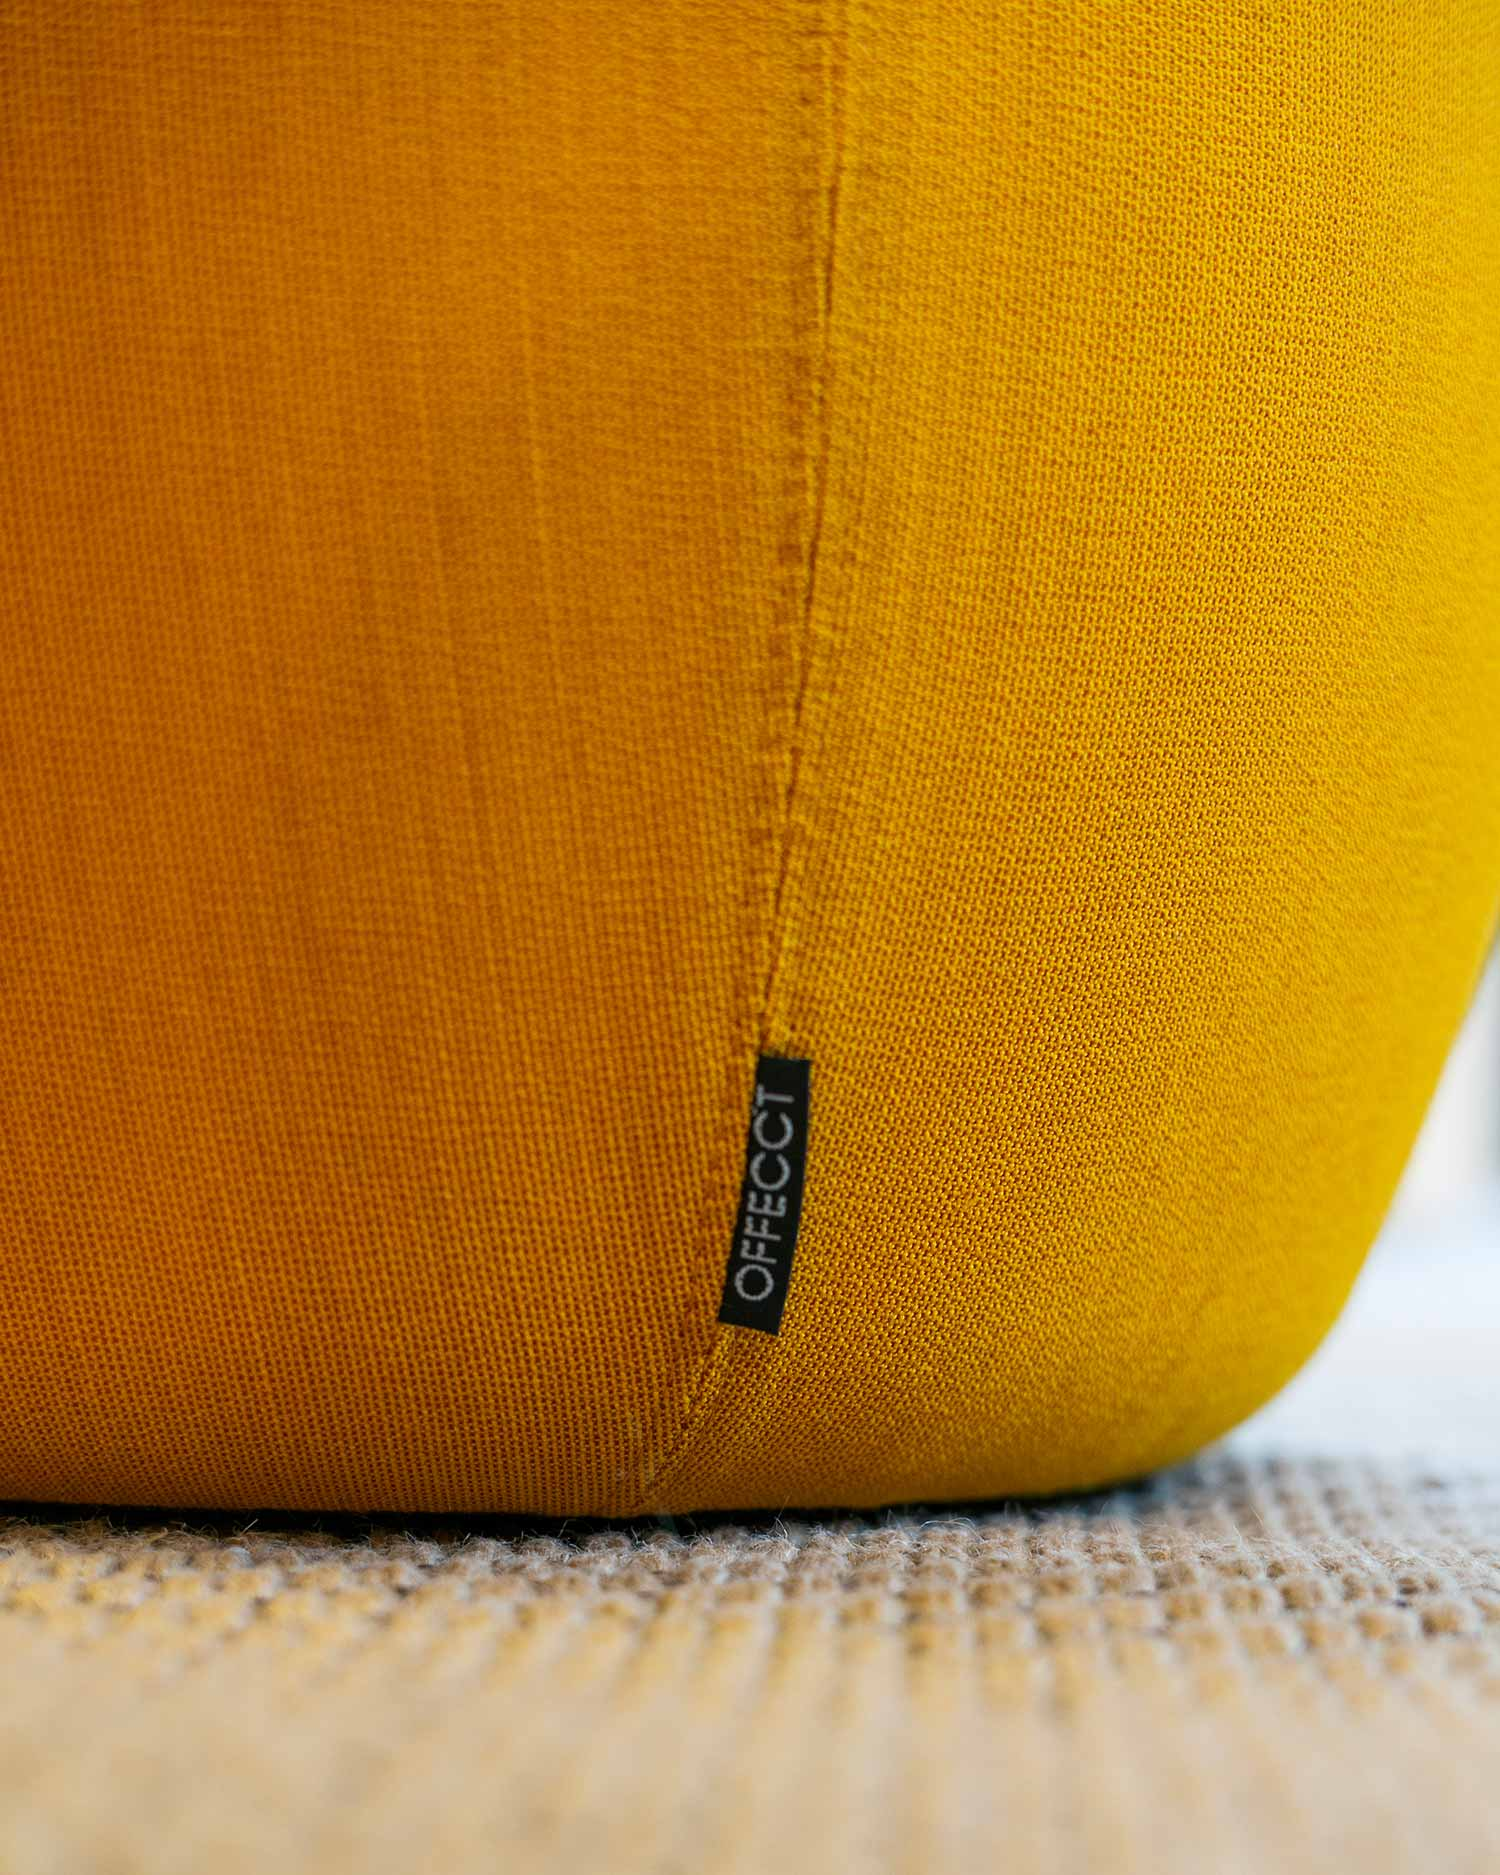 yellow orange offecct carry on stool interior design office furniture close up